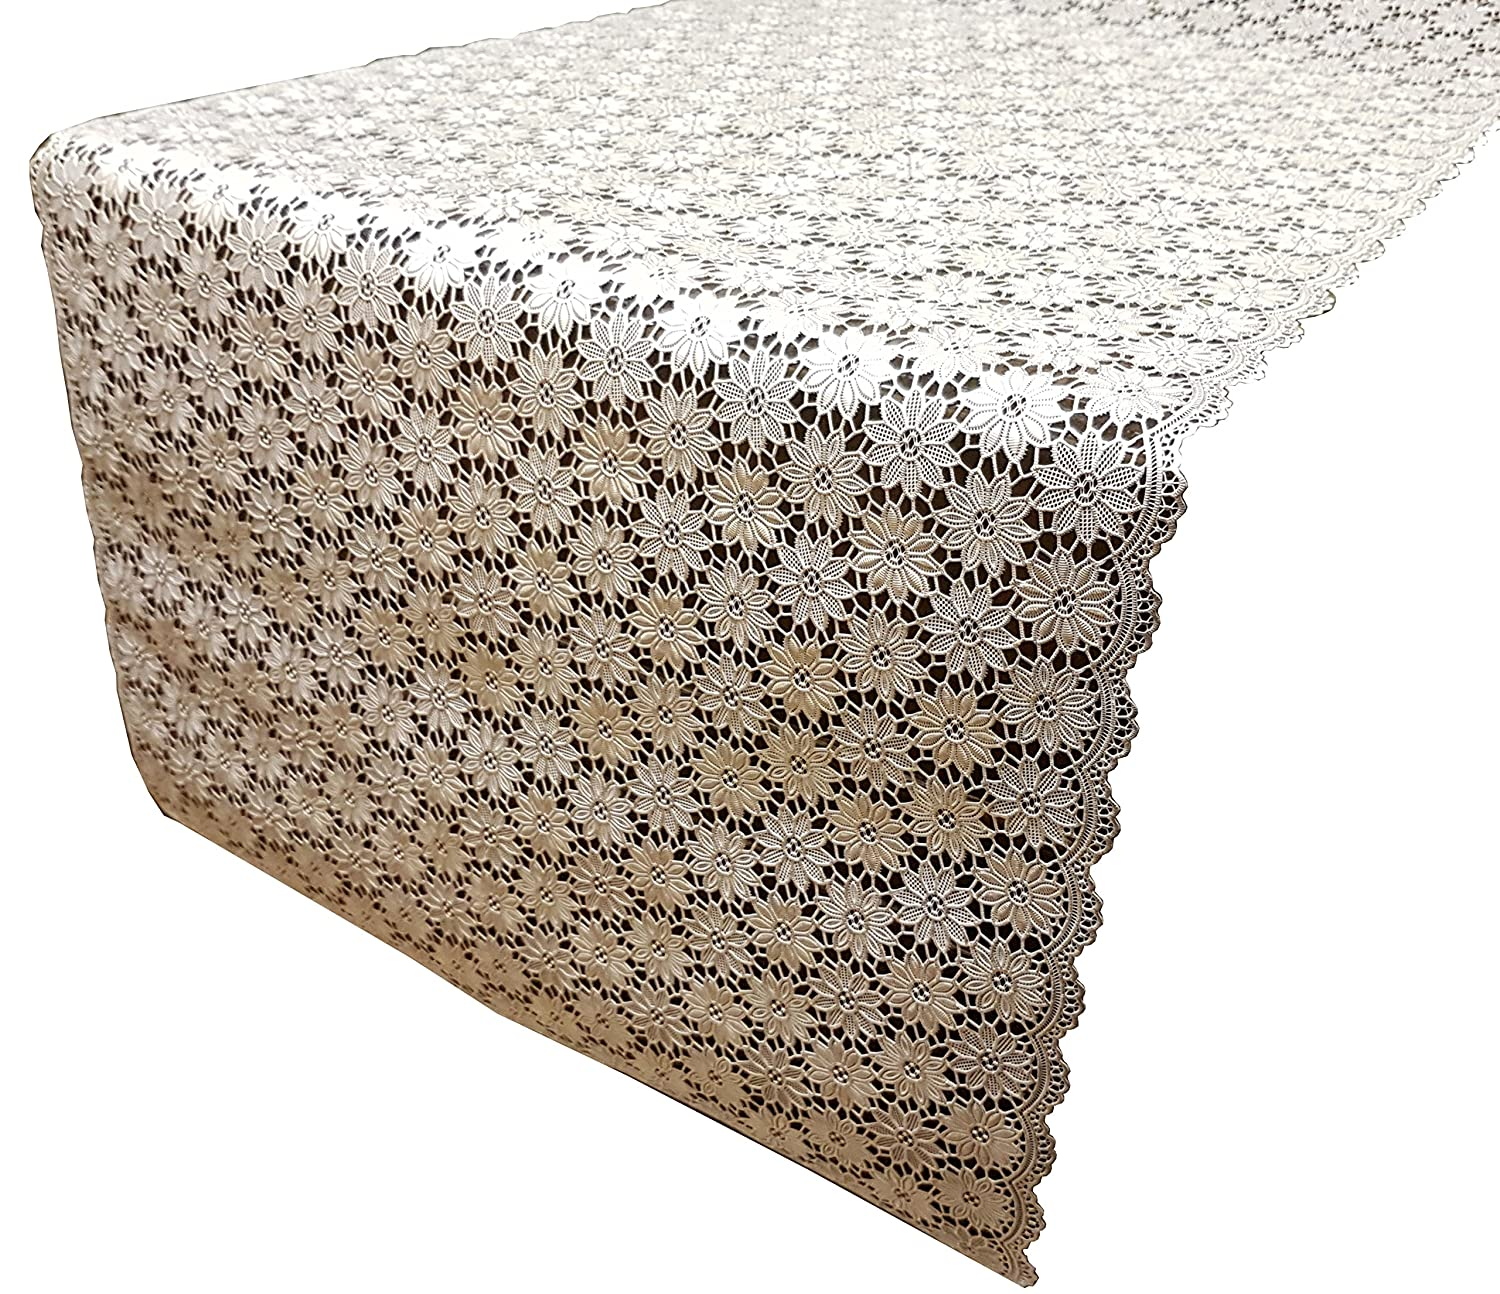 Wipe Clean 400cm x 50cm Vinyl // Plastic Textured Floral Pretty Lace Effect Flower PVC Table Runner Lace Daisy Silver 4 Metres